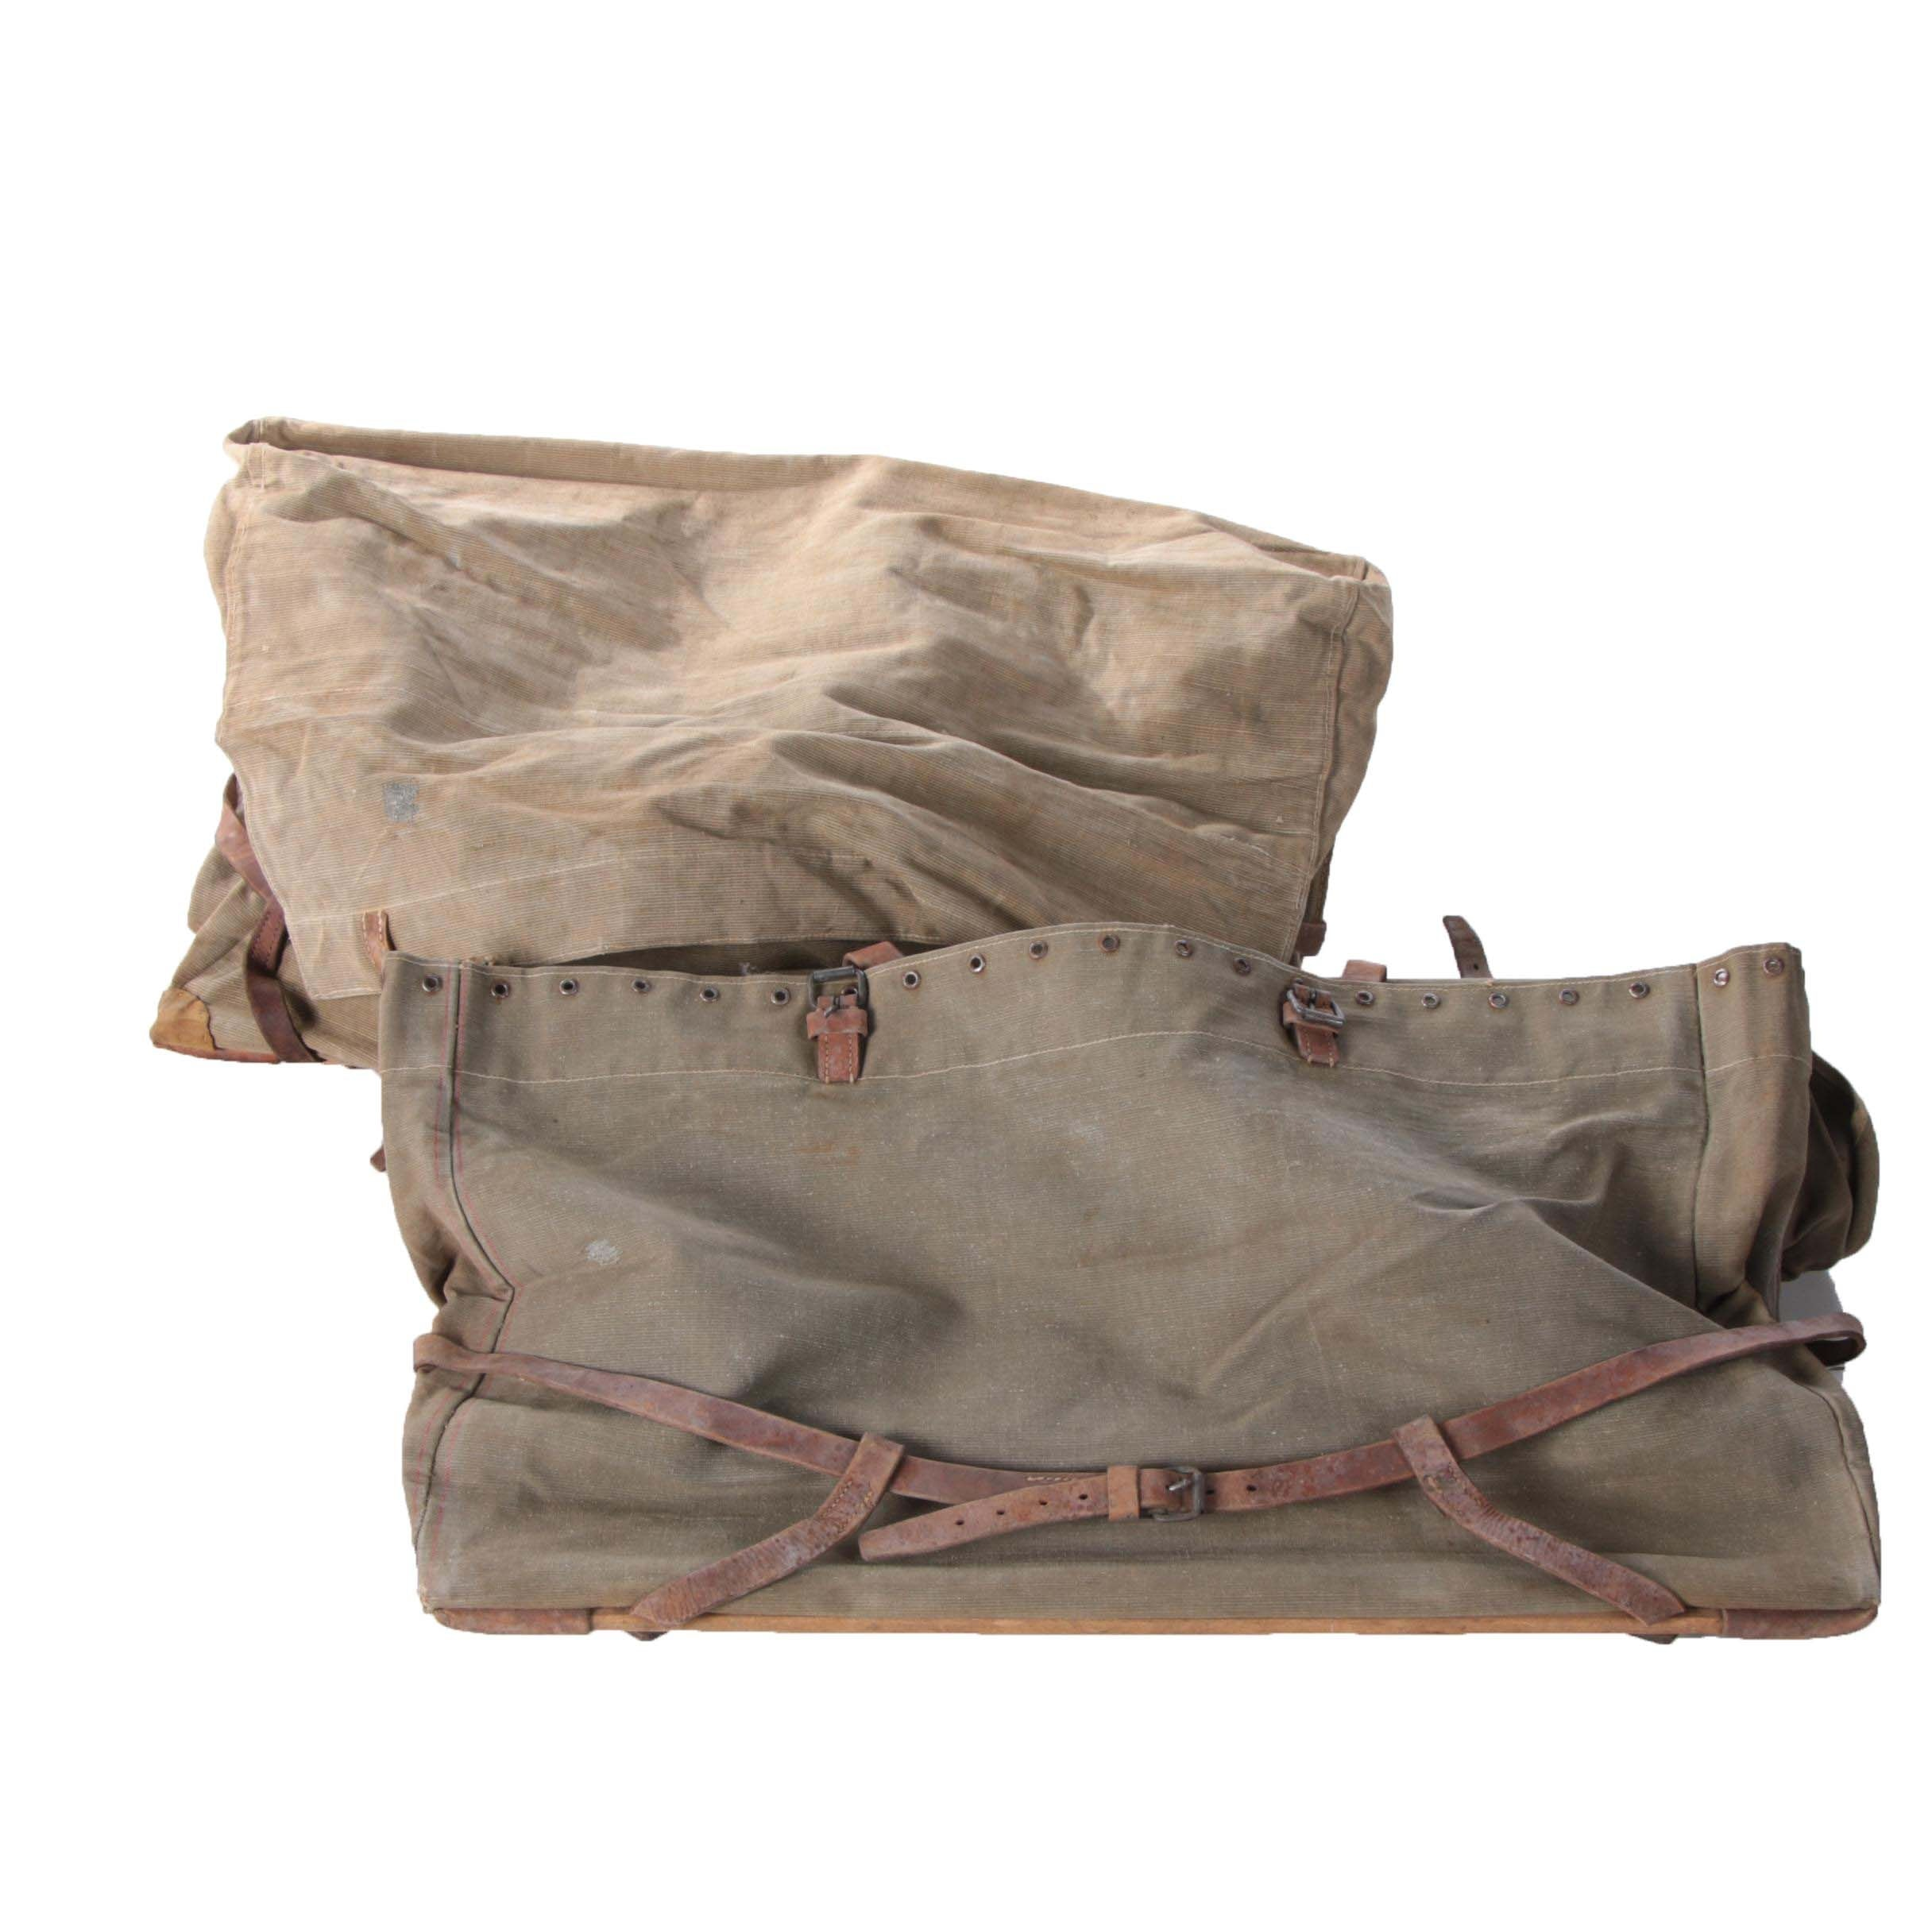 Travel Bags with Wood and Leather, Mid-20th Century